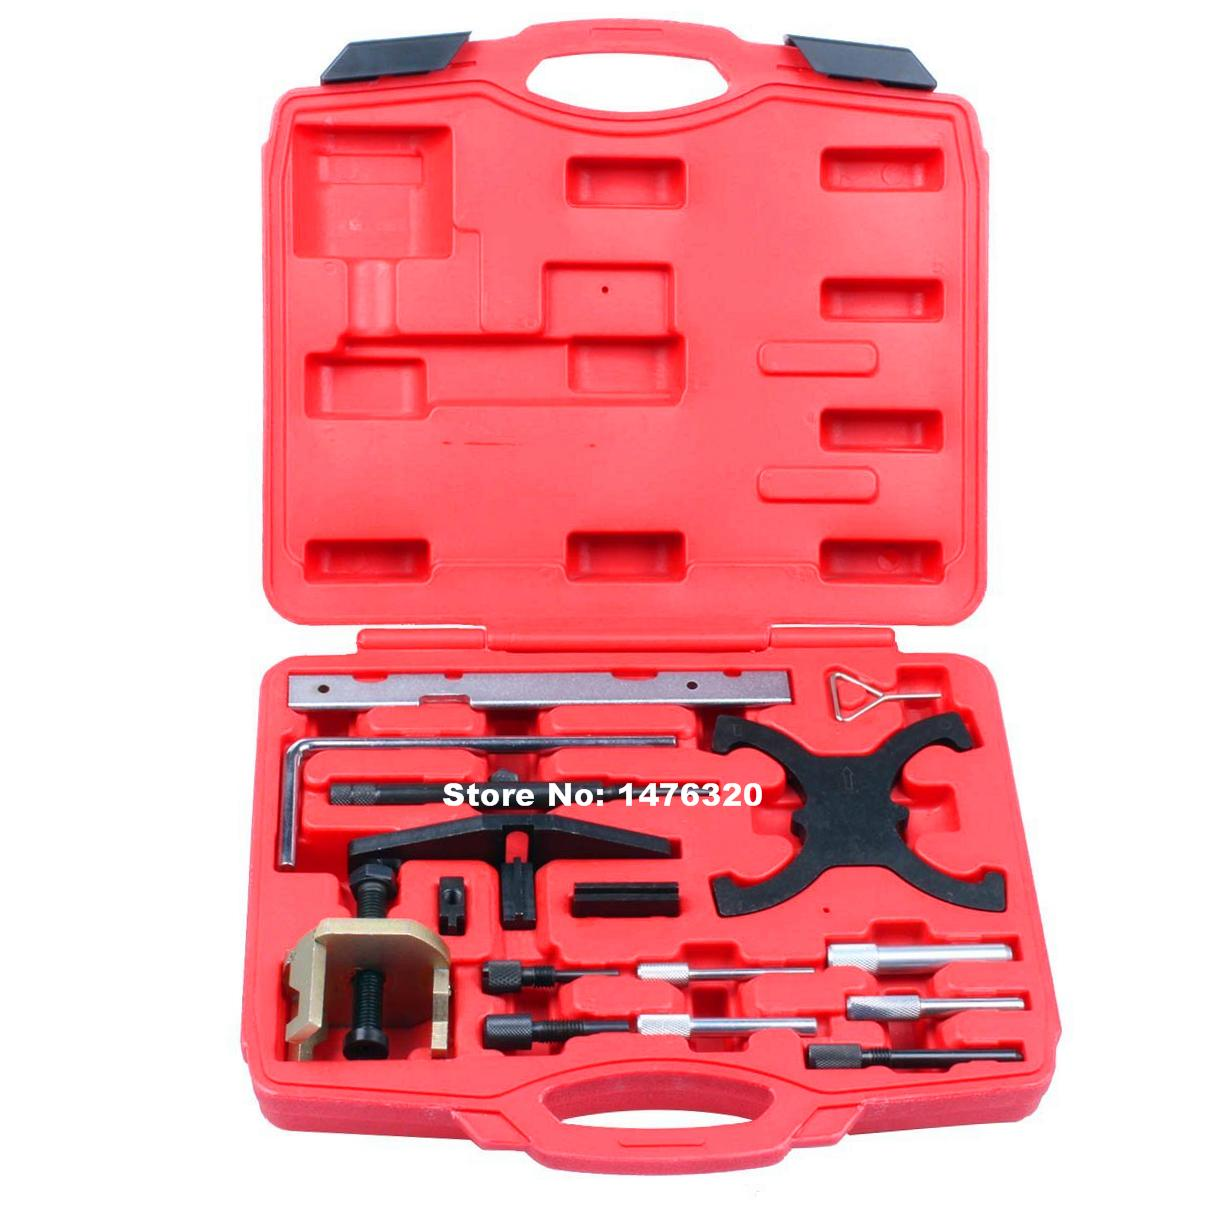 Car Engine Timing Crankshaft Locking Alignment Tool Set For Ford 1.4/1.6/1.8/2.0/2.2 AT2076